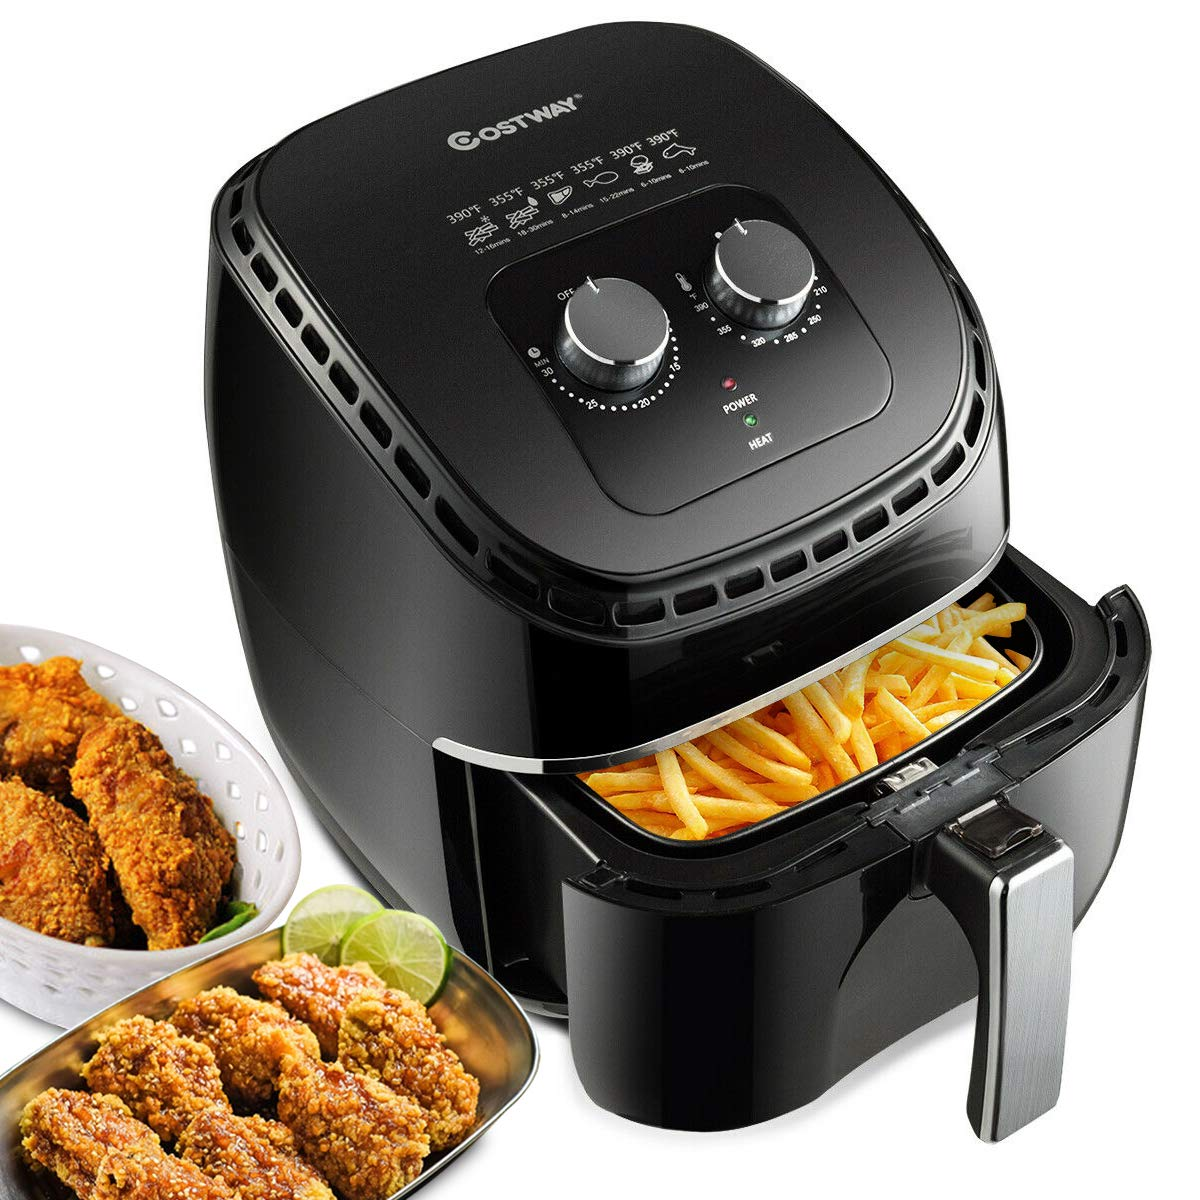 COSTWAY Air Fryer 3.5Qt 1300W Electric Hot Oil-Less Oven Cooker, UL Cretified, Dishwasher Safe, with Smart Time&Temperature Control, Non Stick Fry Basket, Auto Shut Off (Black)